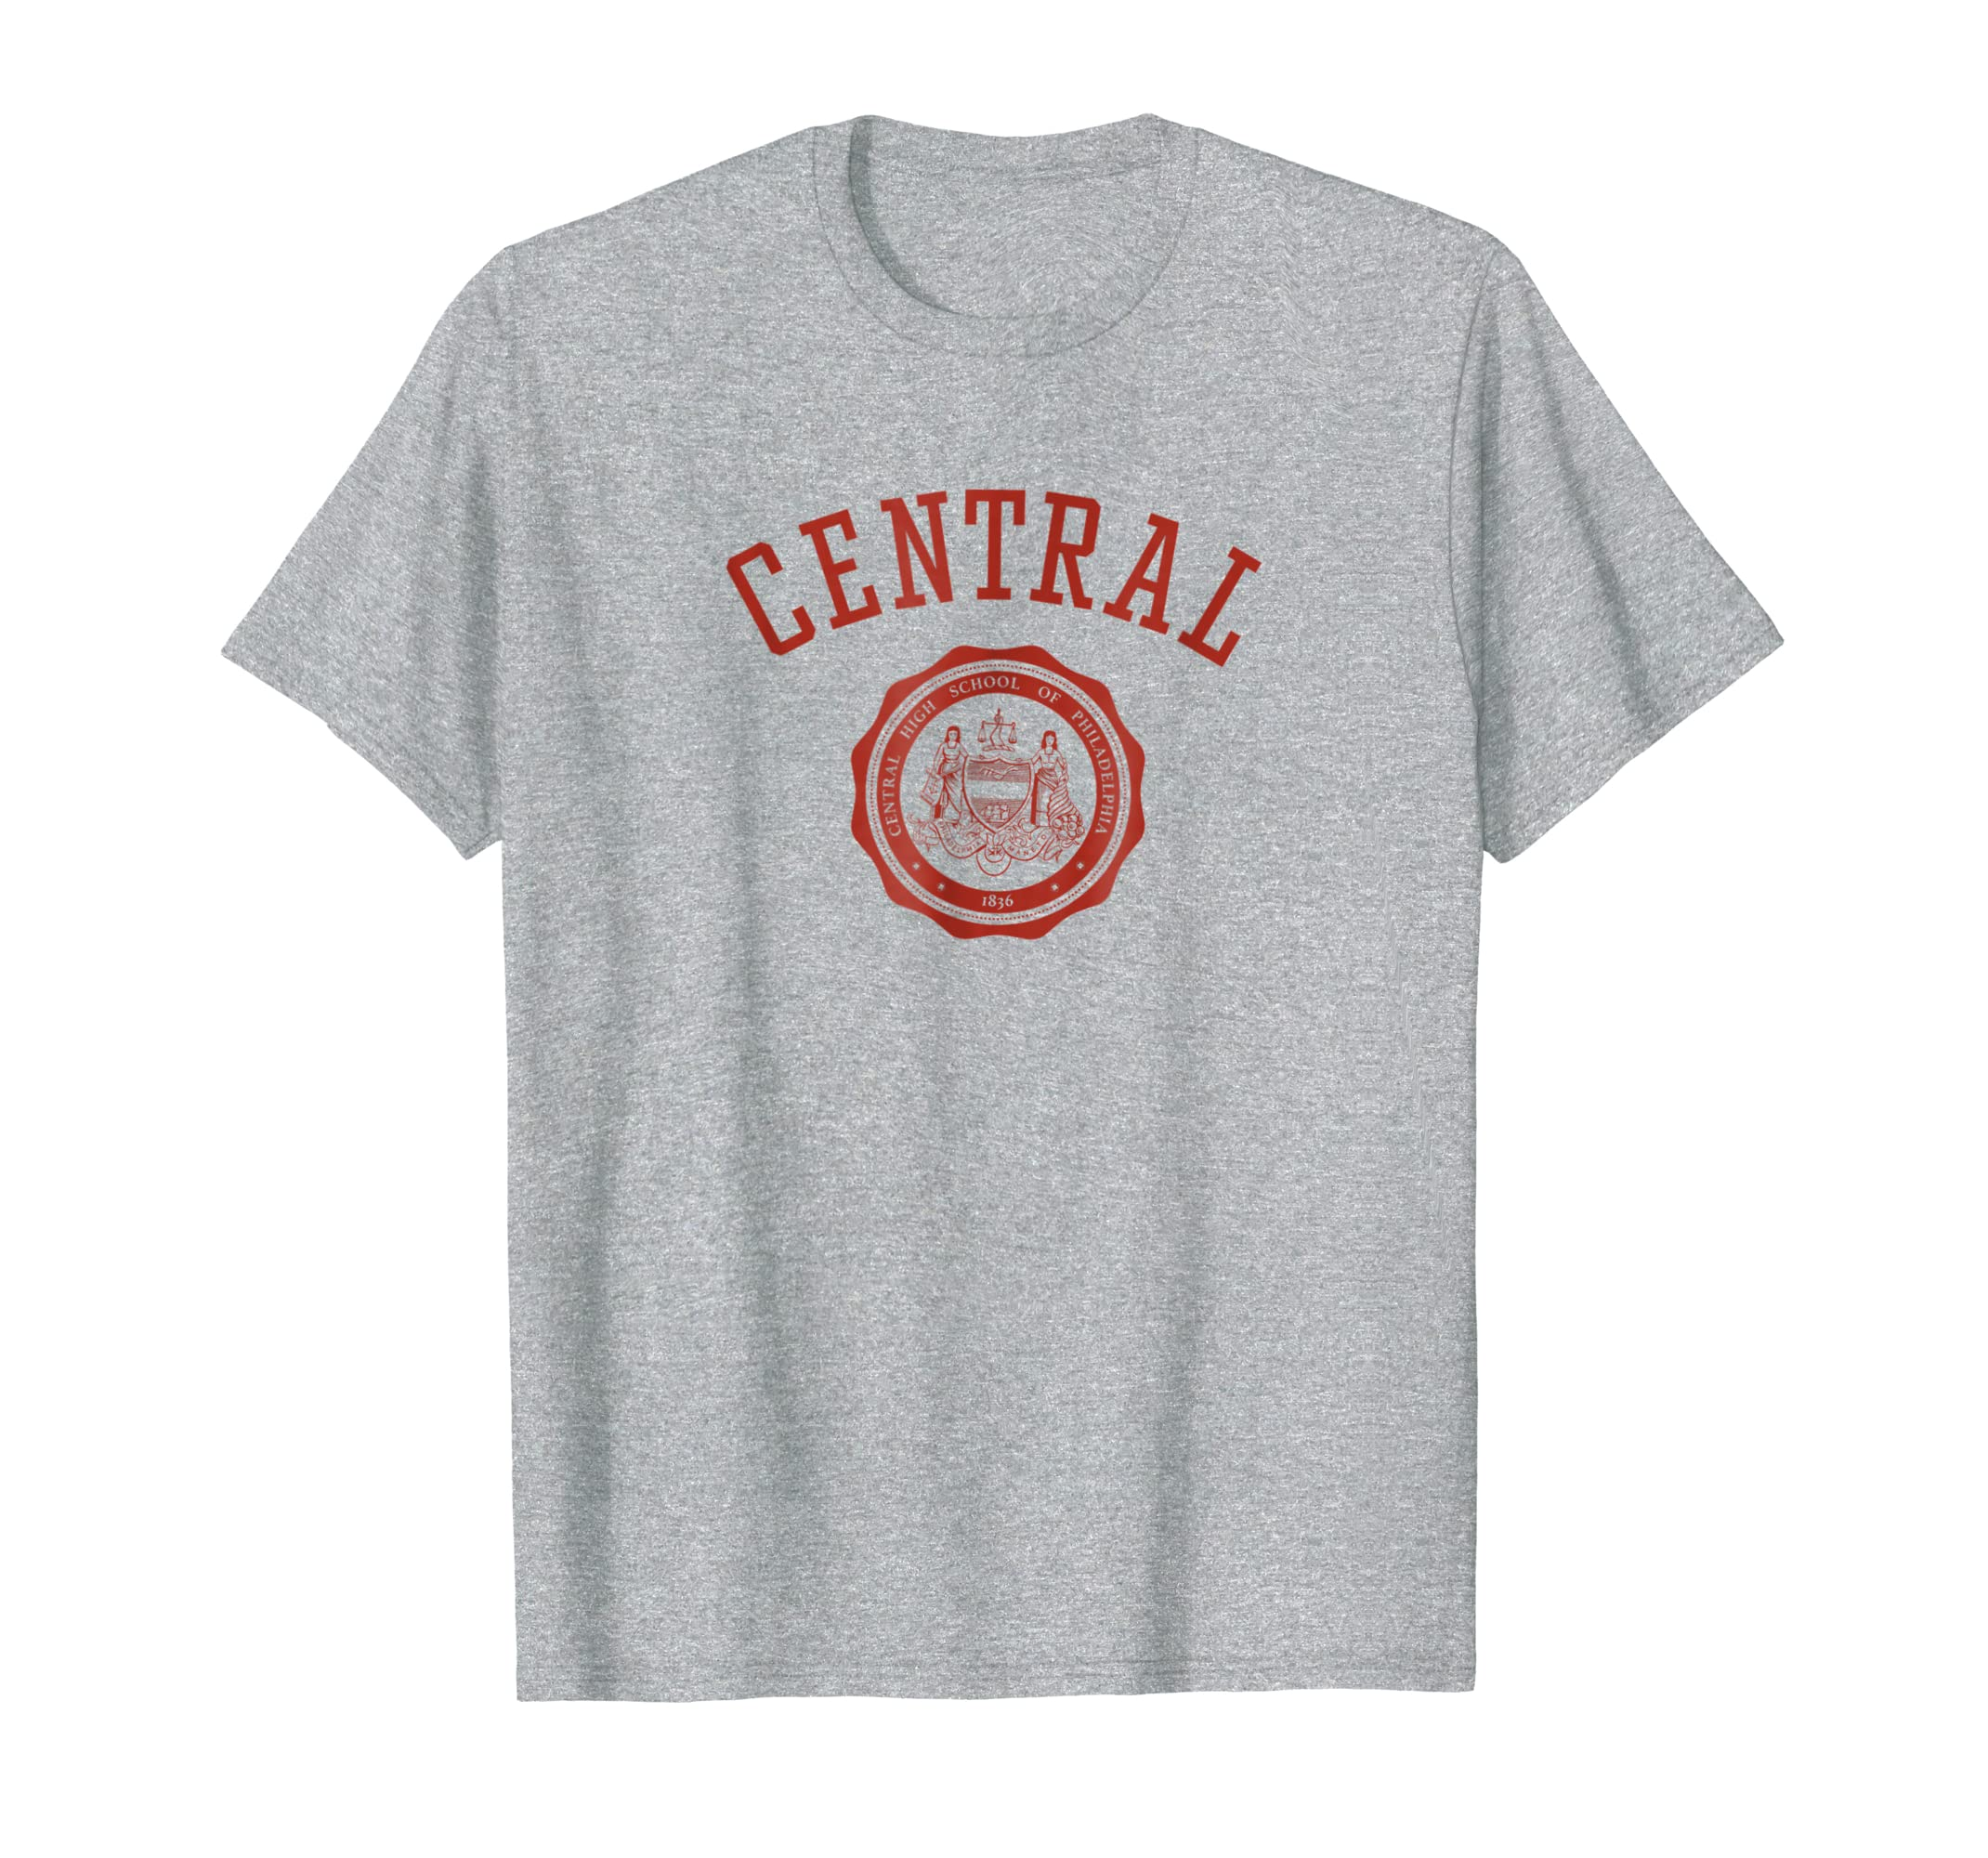 251! Classic Central High School T-Shirt-Rose